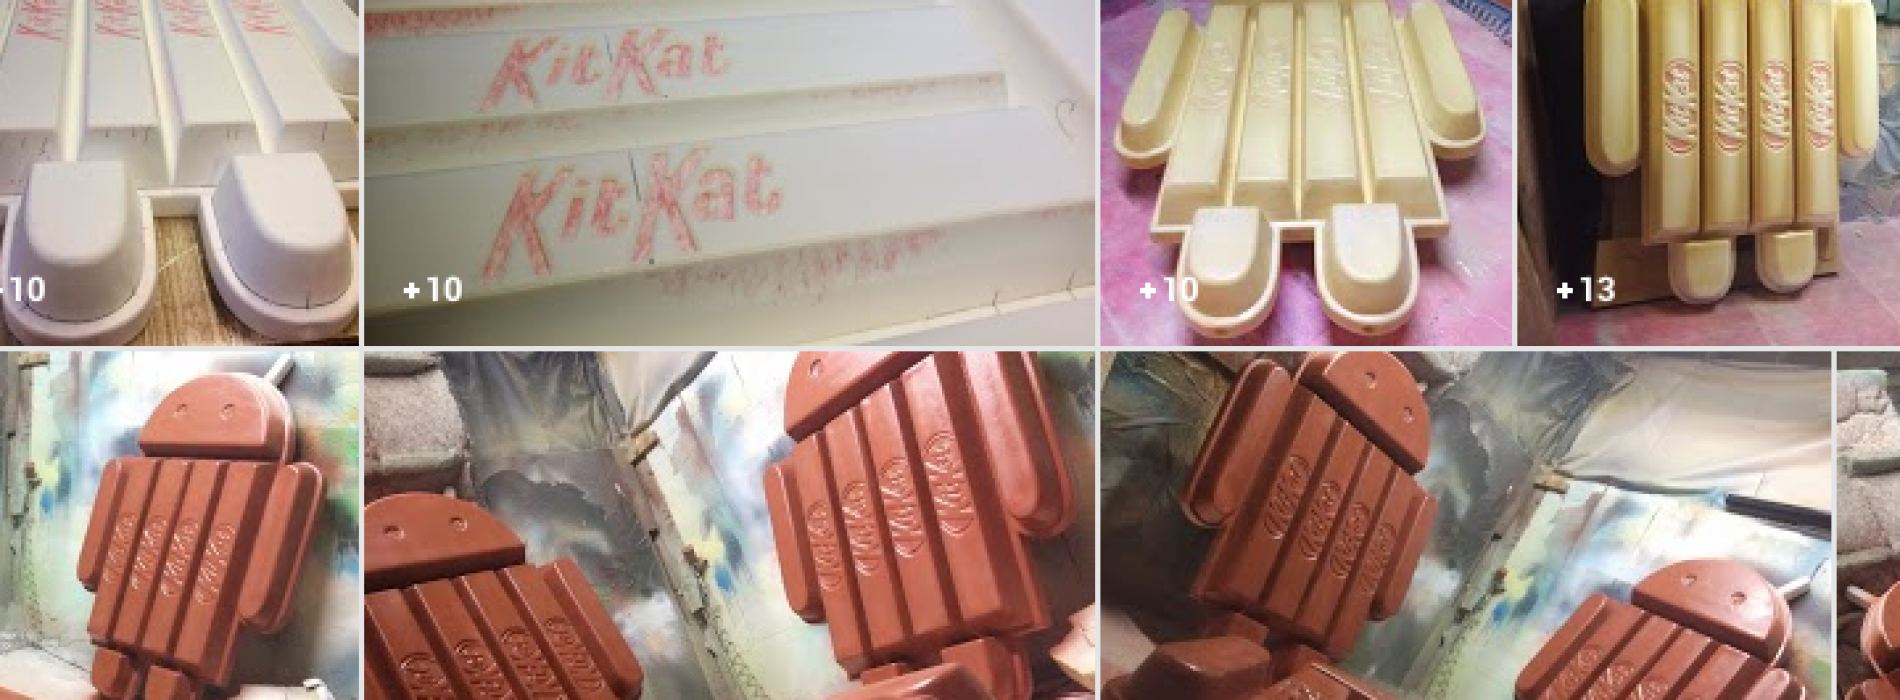 Check out these photos of the Android 4.4 KitKat statue coming to life